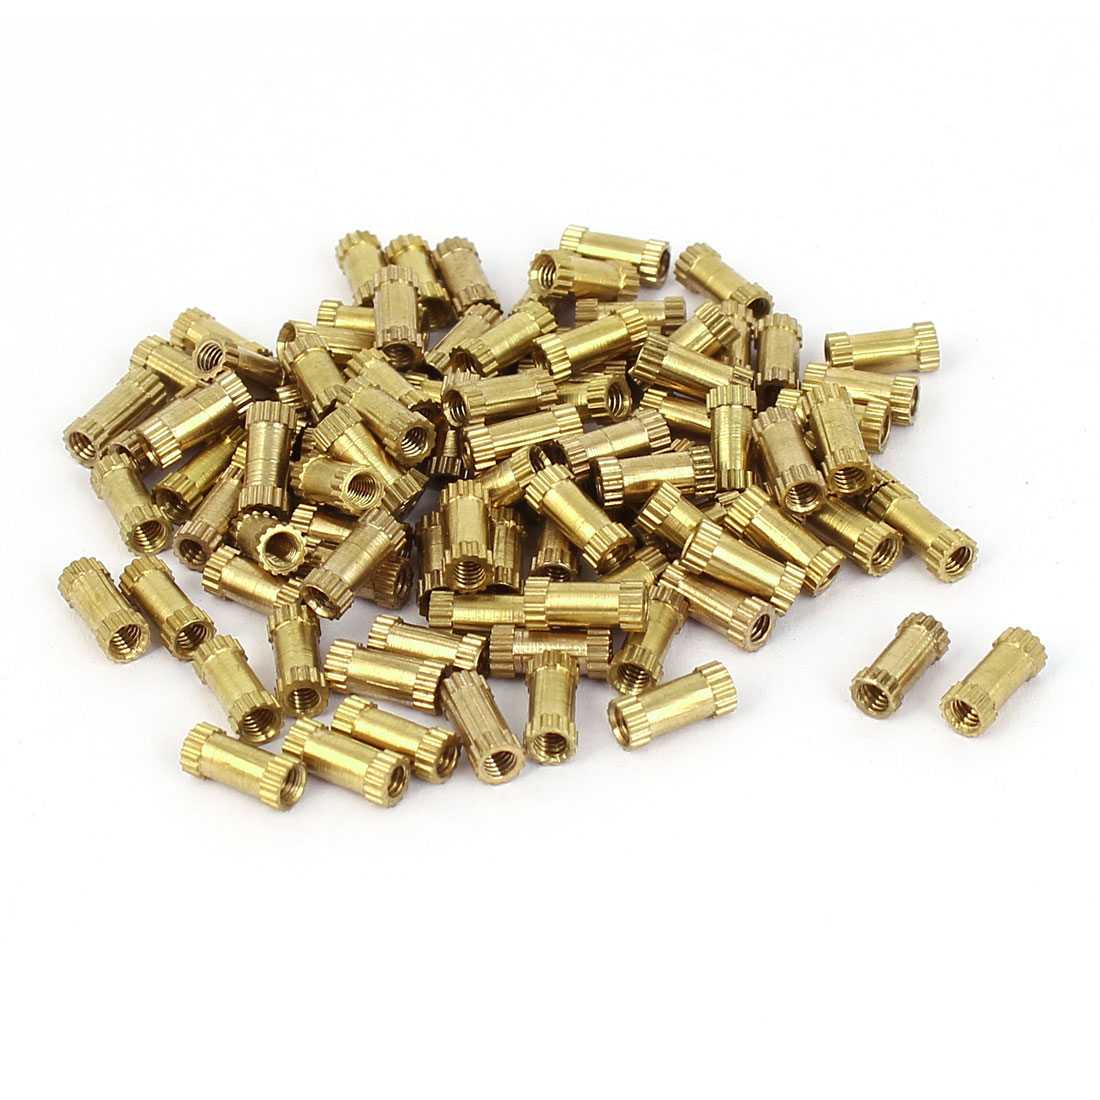 M2.5x8mm 3.5mm OD Brass Embedded Knurled Insert Thumb Nuts 100pcs